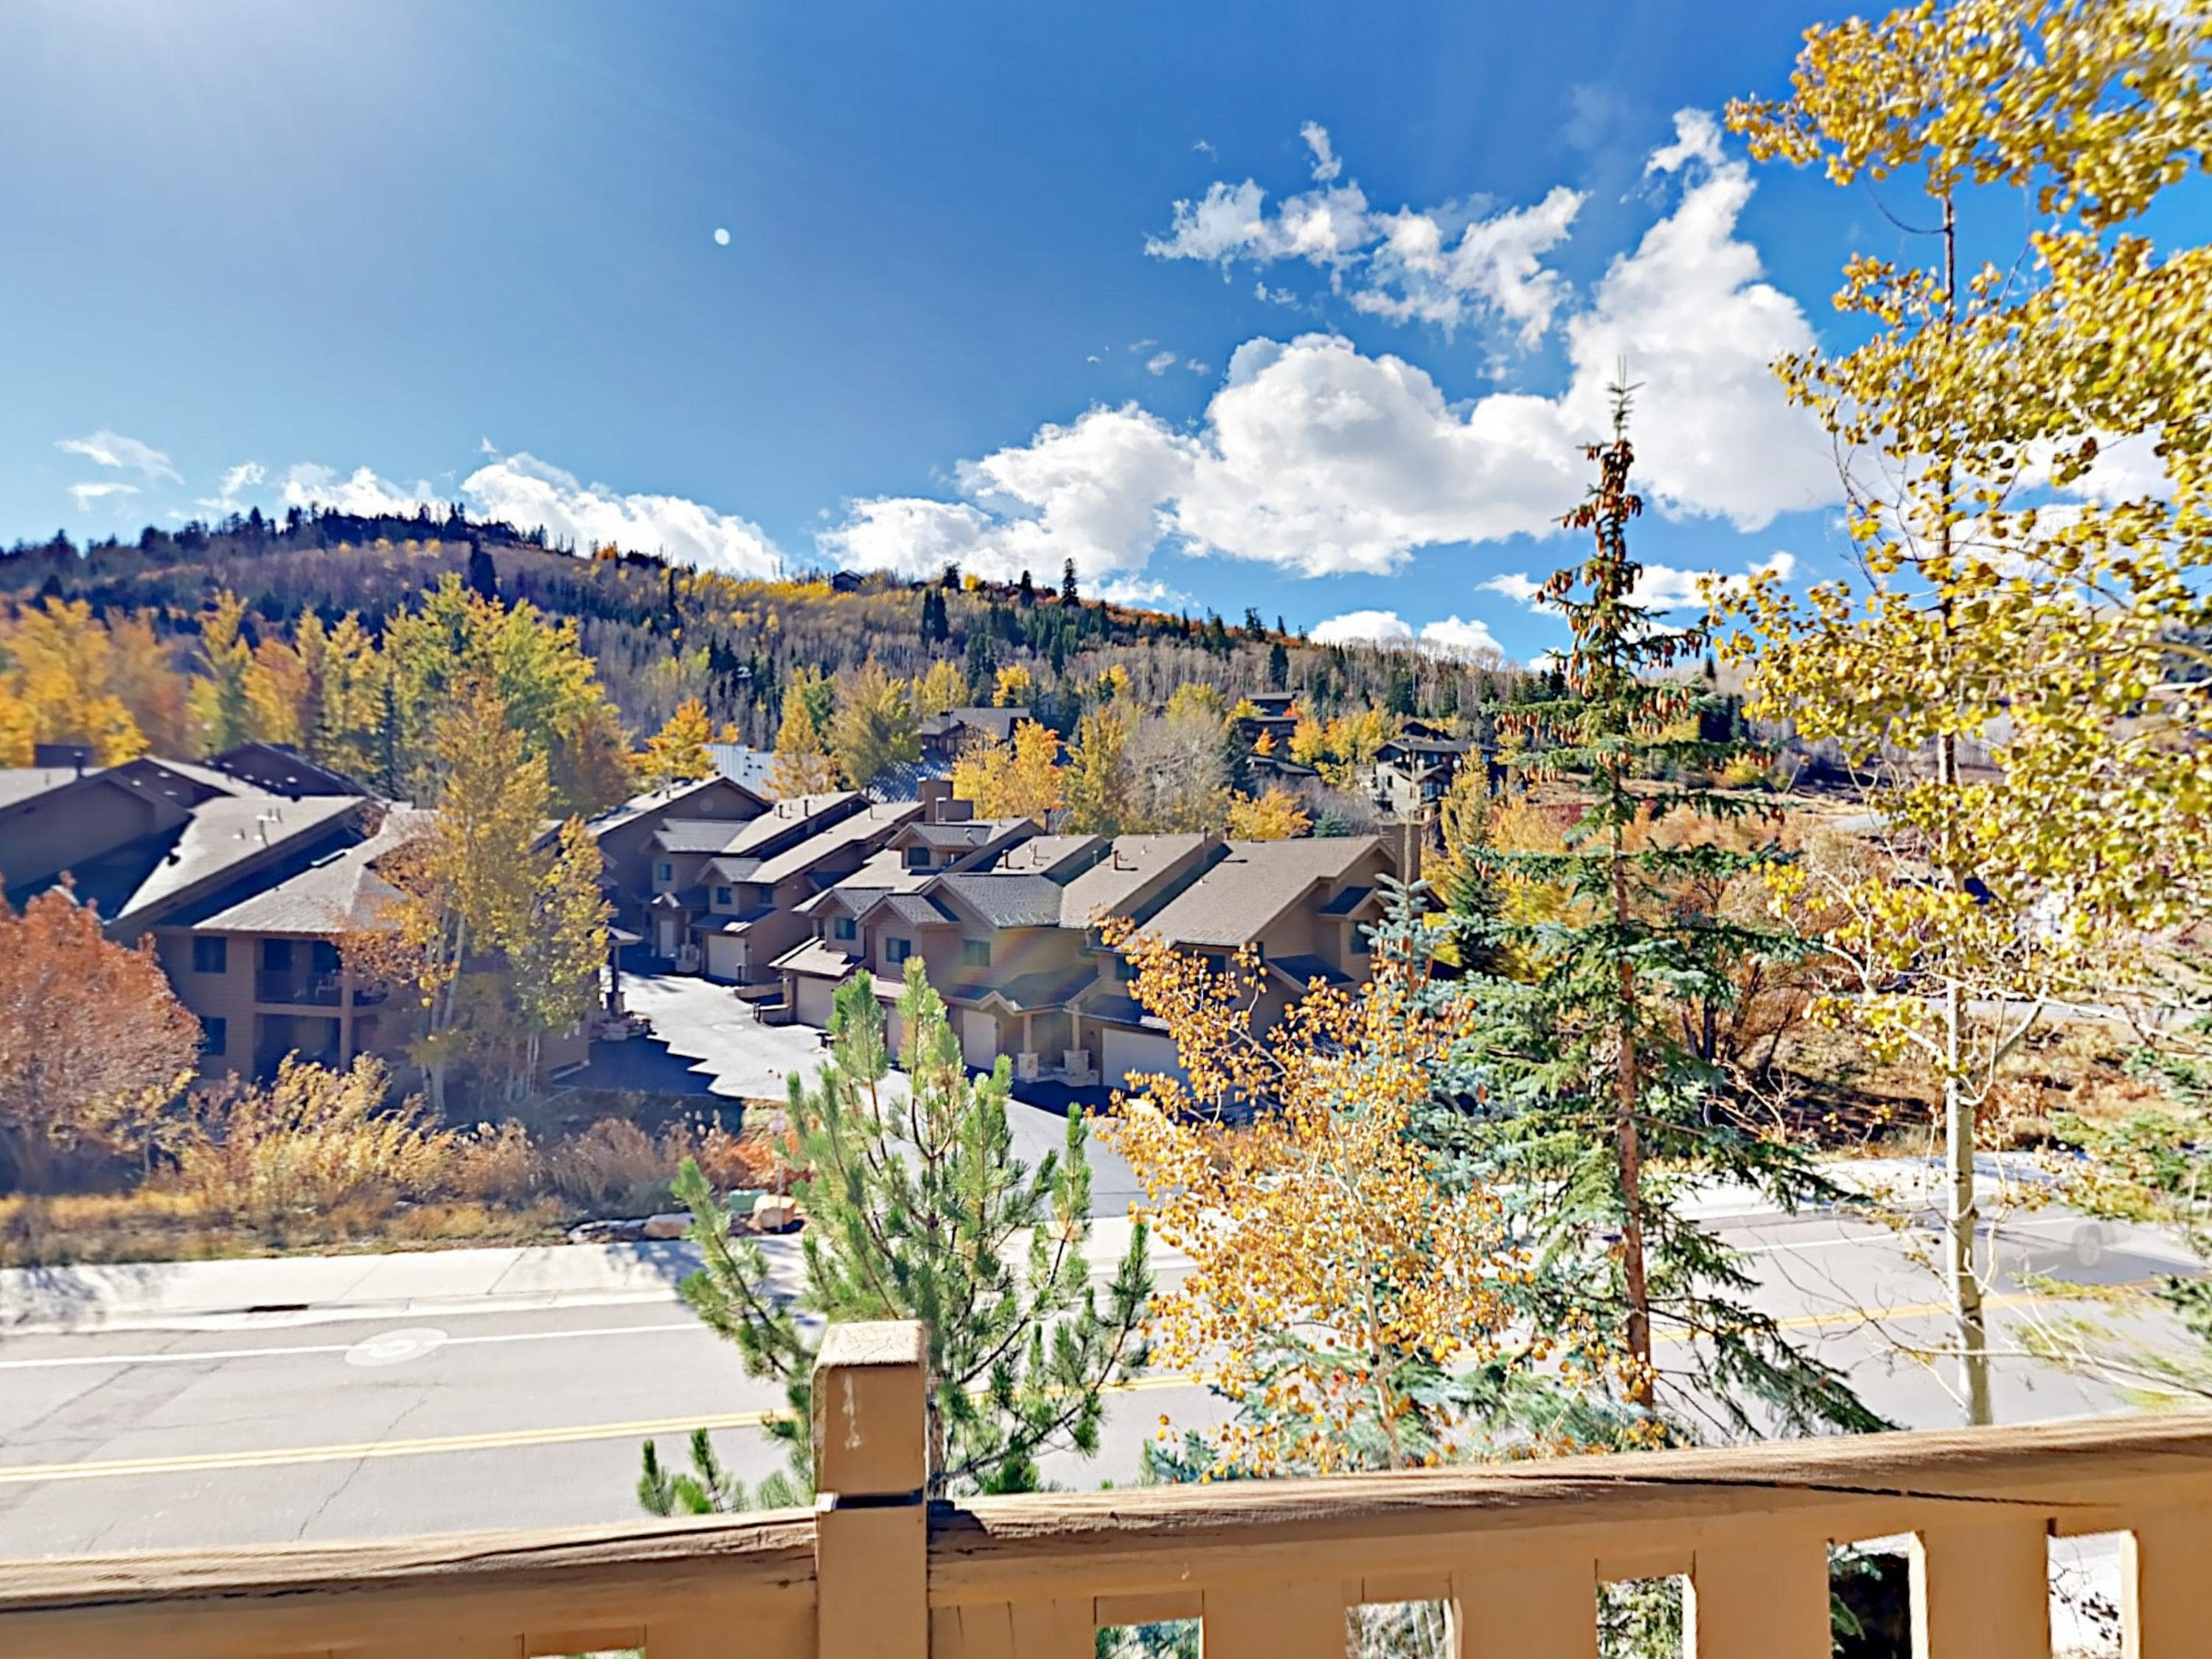 Enjoy gorgeous views from the condo across the mountain scenery.